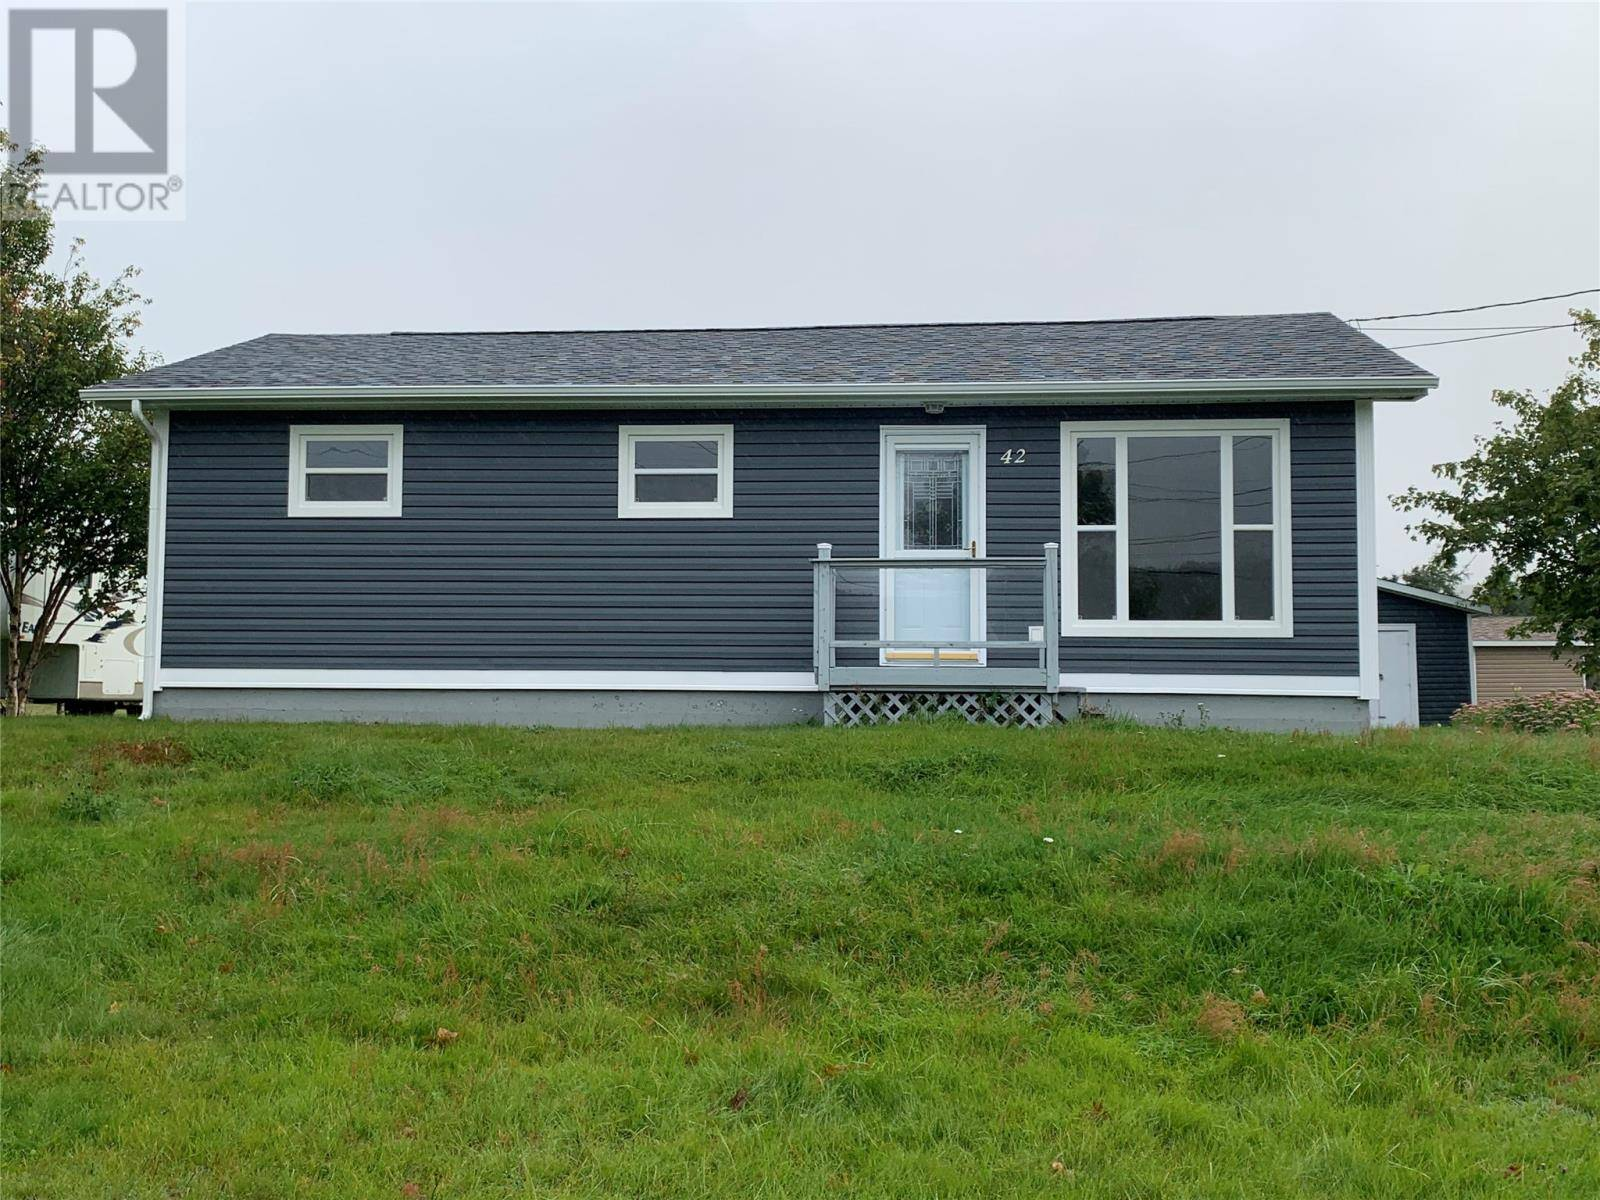 House for sale at 42 Church Rd Victoria Newfoundland - MLS: 1203202